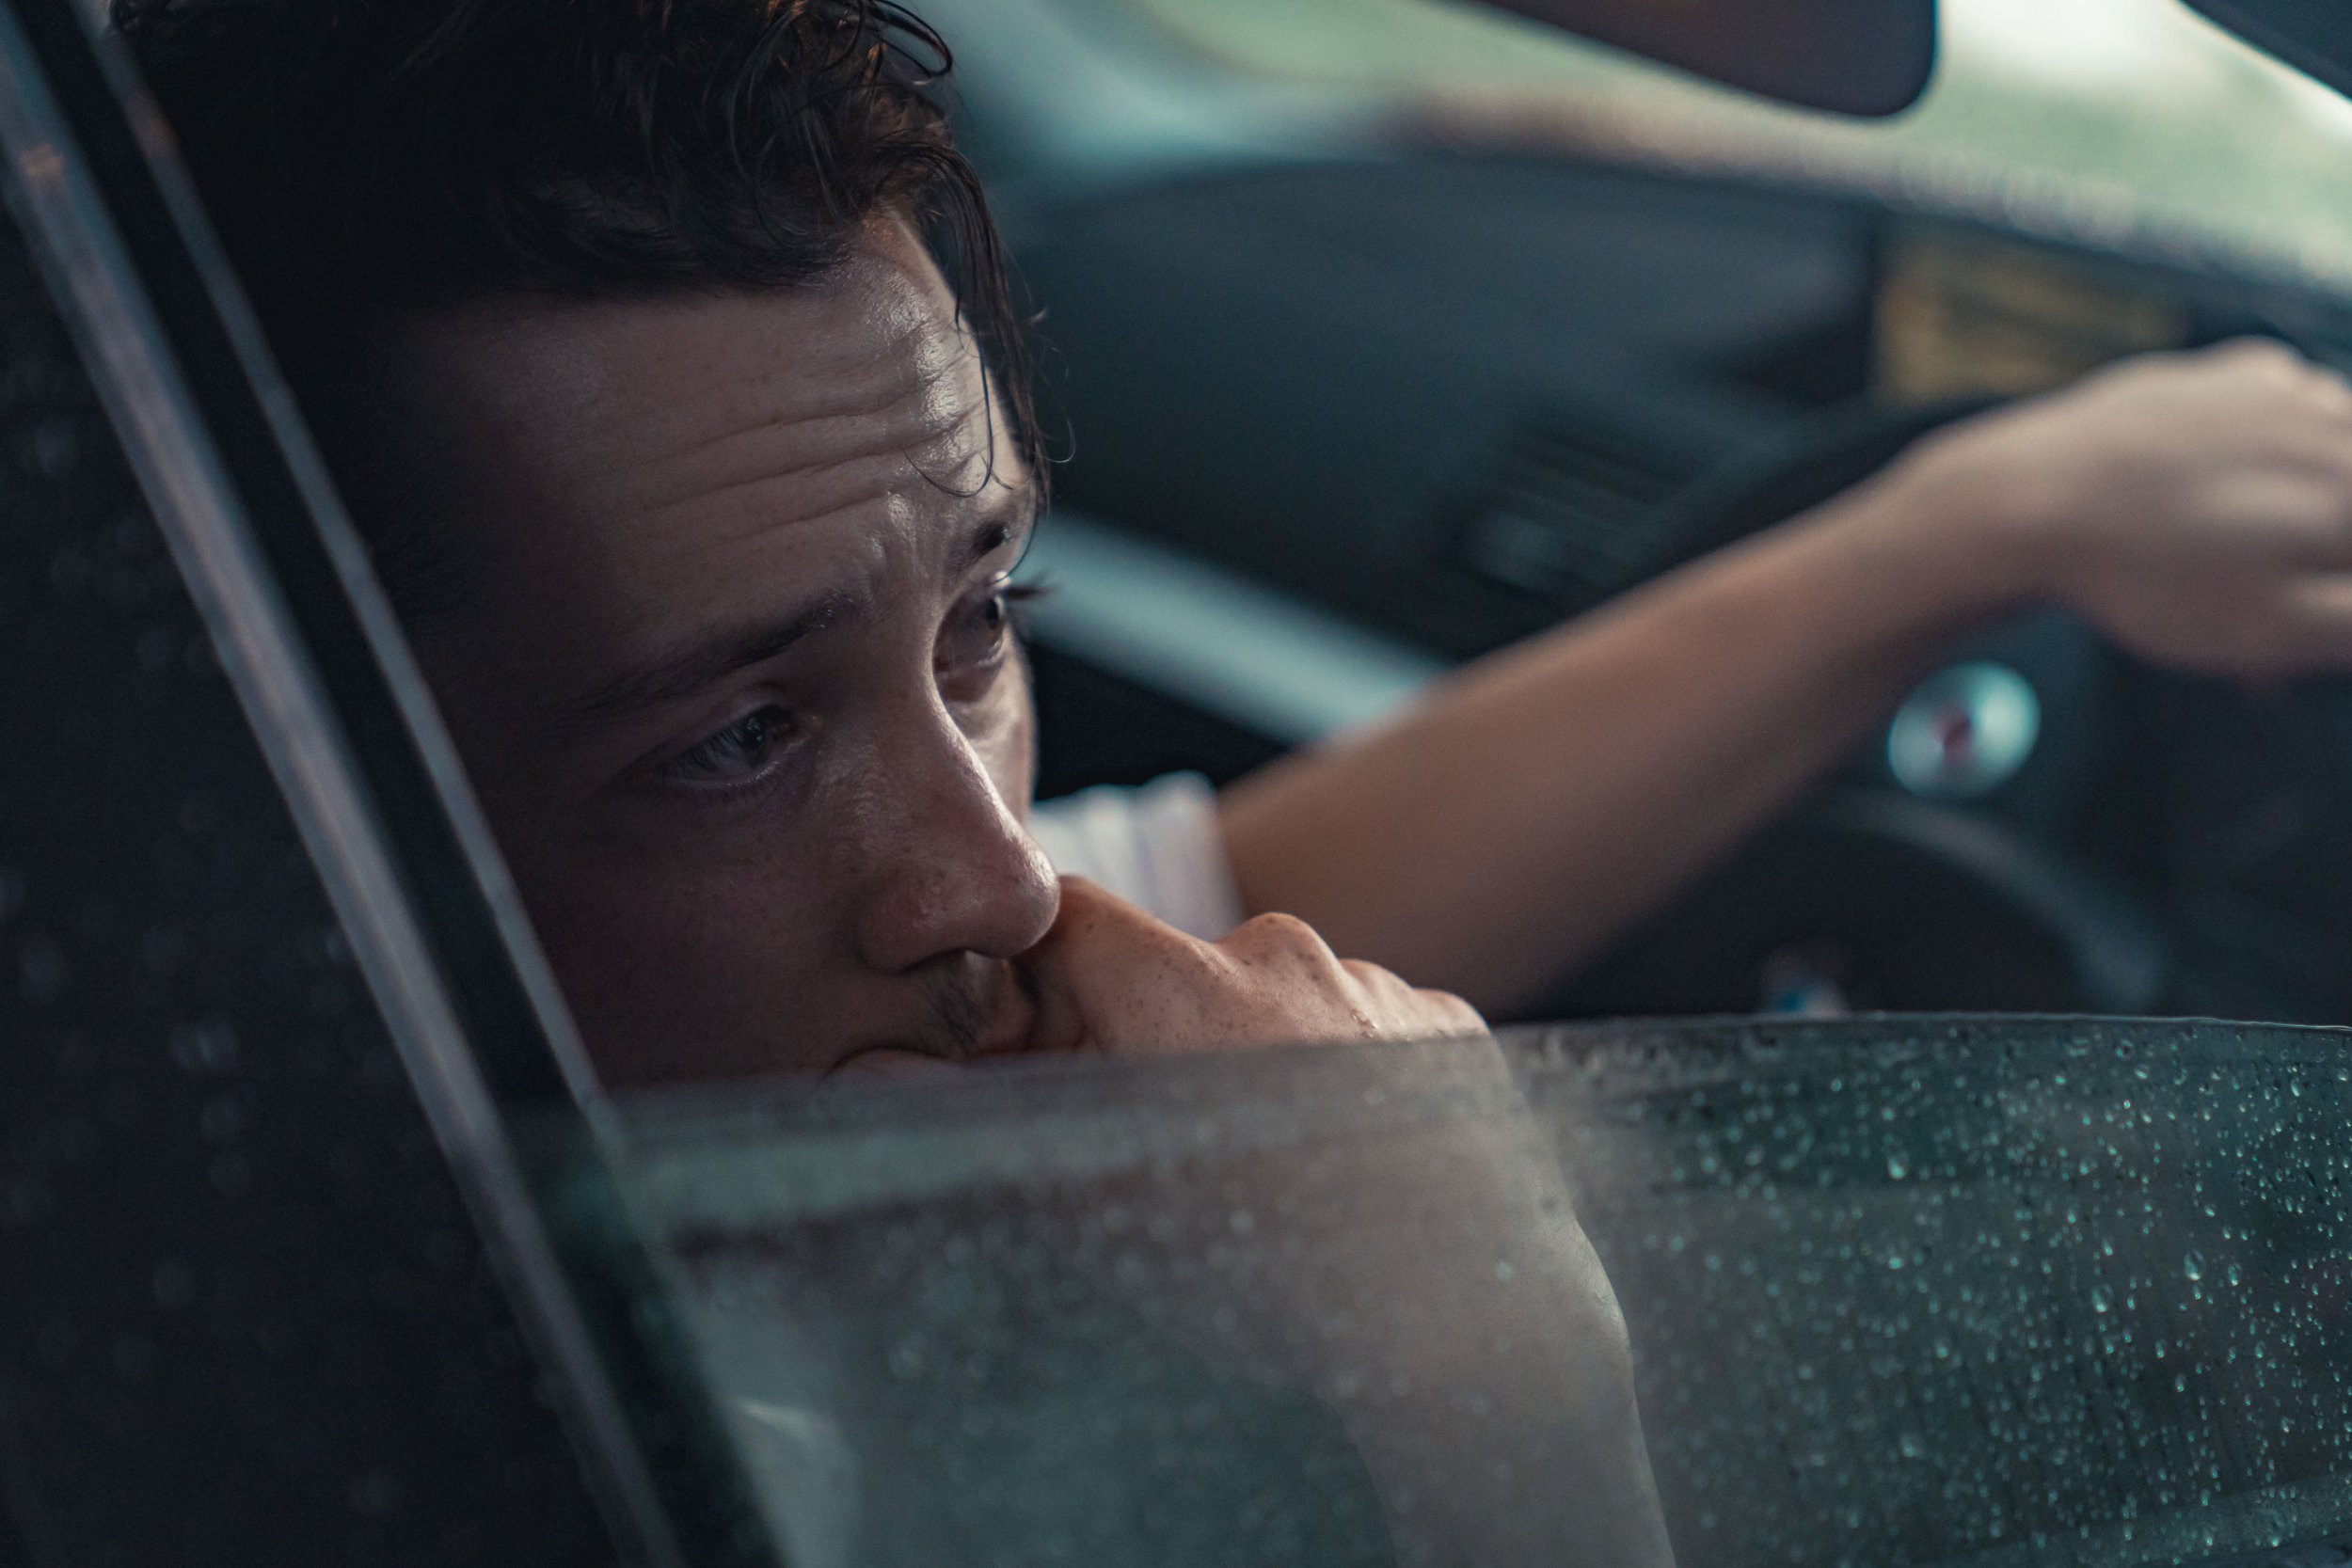 Production still from Stationary. Jimmy, a white man in his late twenties, is sat in the driver's seat of a car, the window half rolled down and flecked with rain. His brown hair was slicked back but now falling into his face, his forehead is creased with worry. One hand is on the steering wheel and the other covers his mouth anxiously.